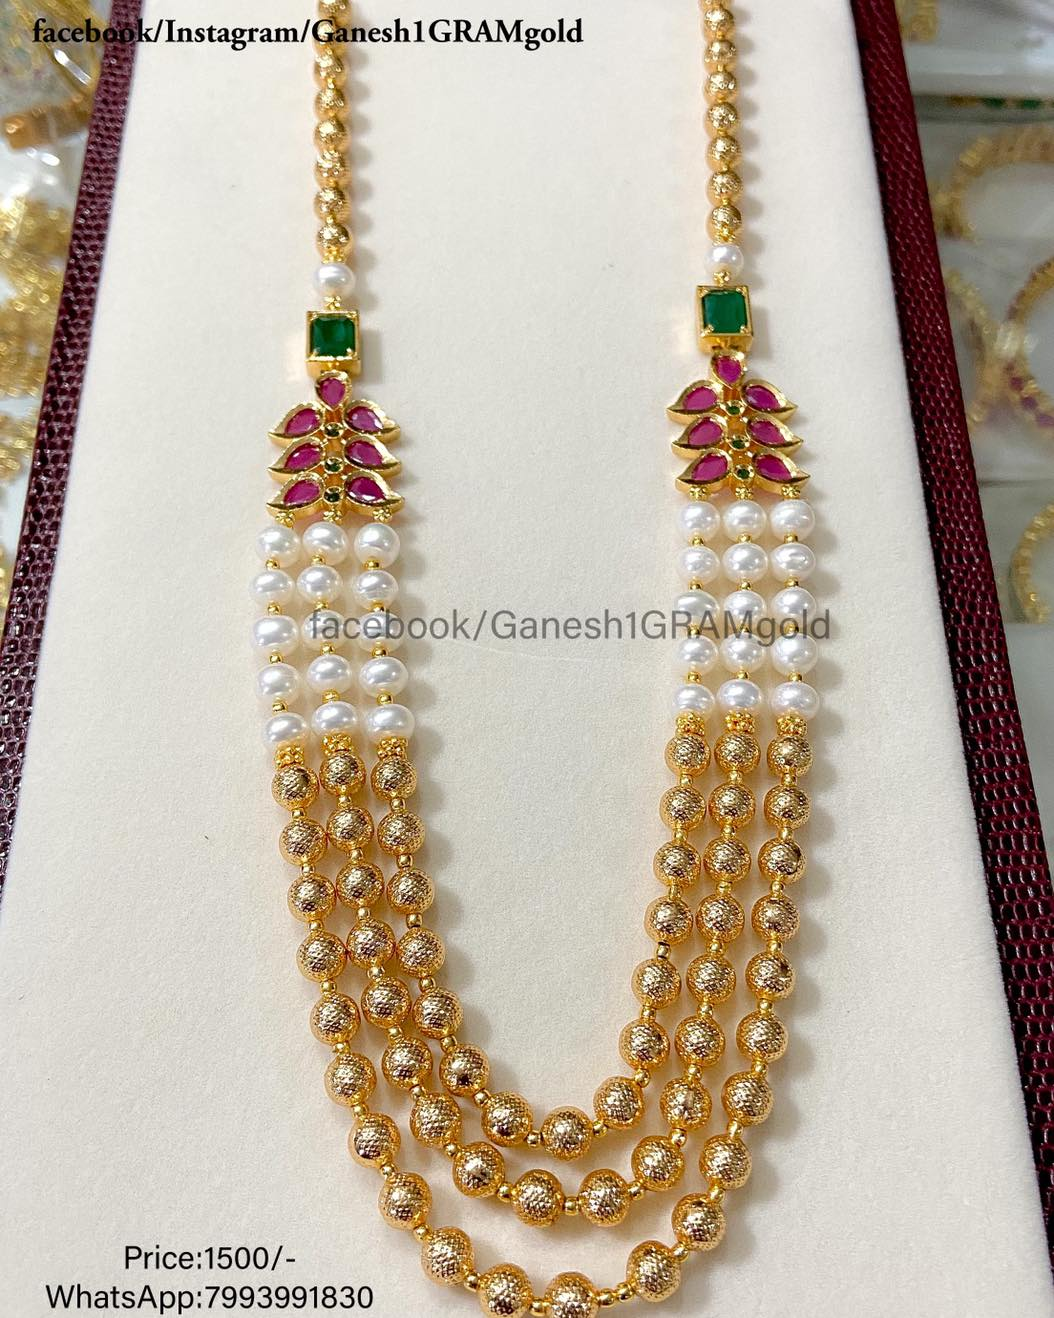 pearls beads with Gold balls mala...1st Quality Real pic Price:1500/- Cash on delivery (COD) available one gram gold online shopping 1gram gold jewelry 1 gram gold polish jewellery